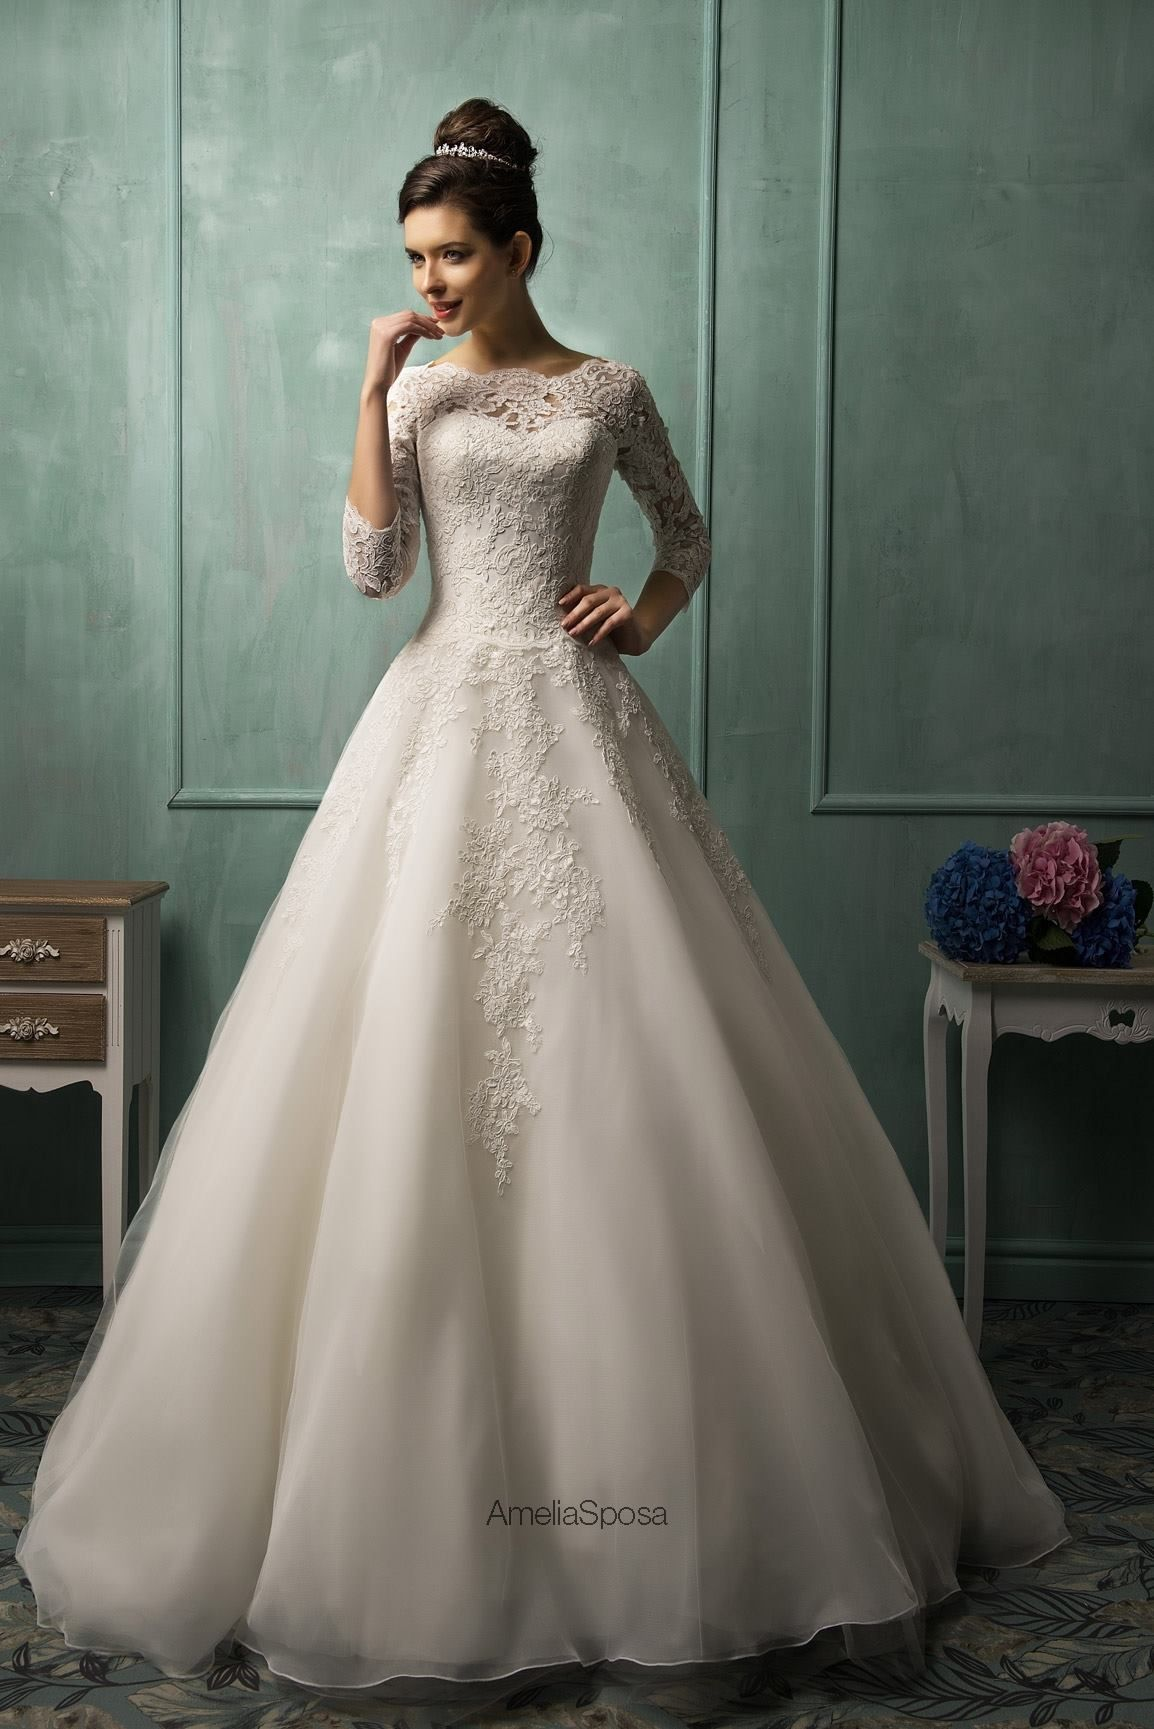 Wedding dress with lace sleeves  The Most Flattering Wedding Dresses  Shoulder Wedding dress and